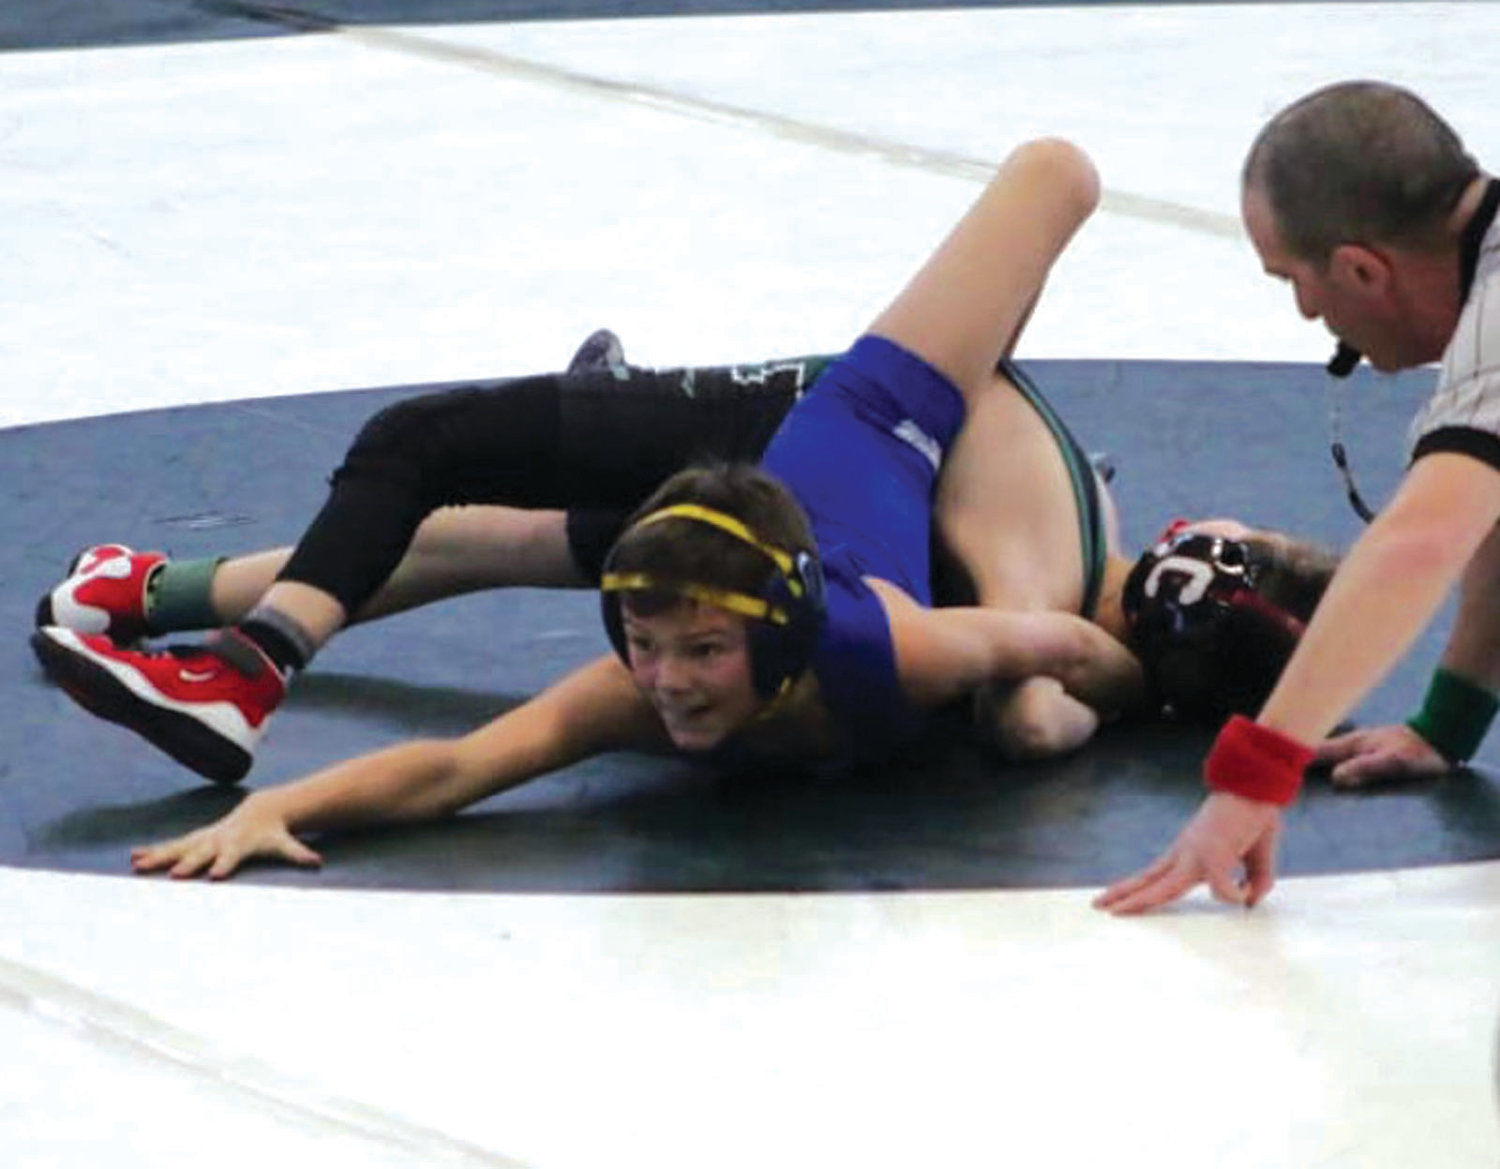 HITTING THE MAT: Vets' Seth McGrew, who won the state title at 70 pounds, works his way through a match at Ponaganset.